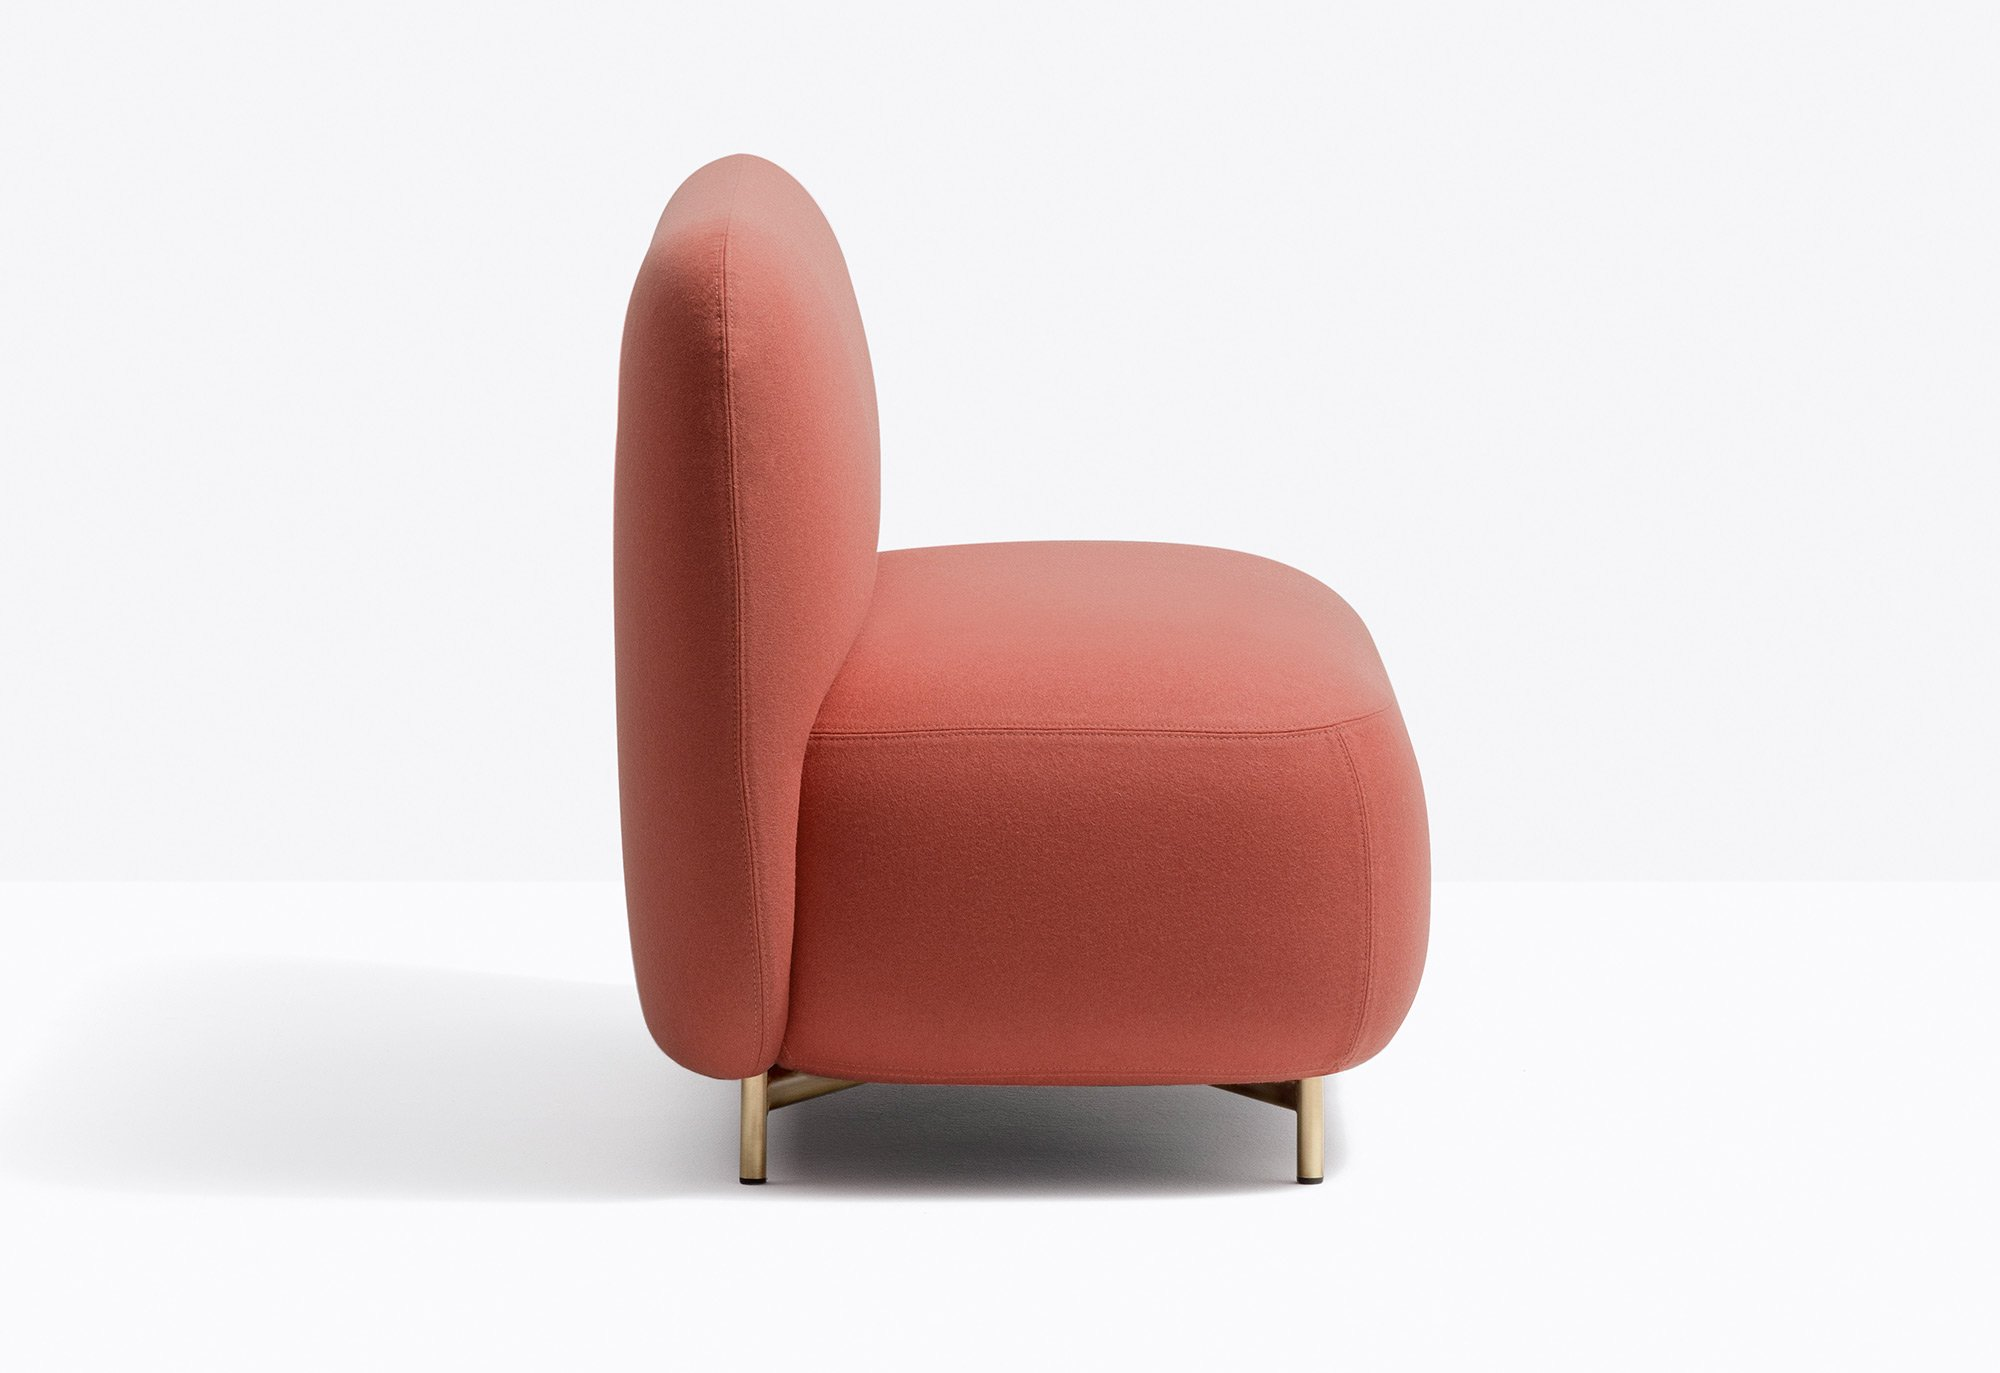 Buddy Sofa from Pedrali